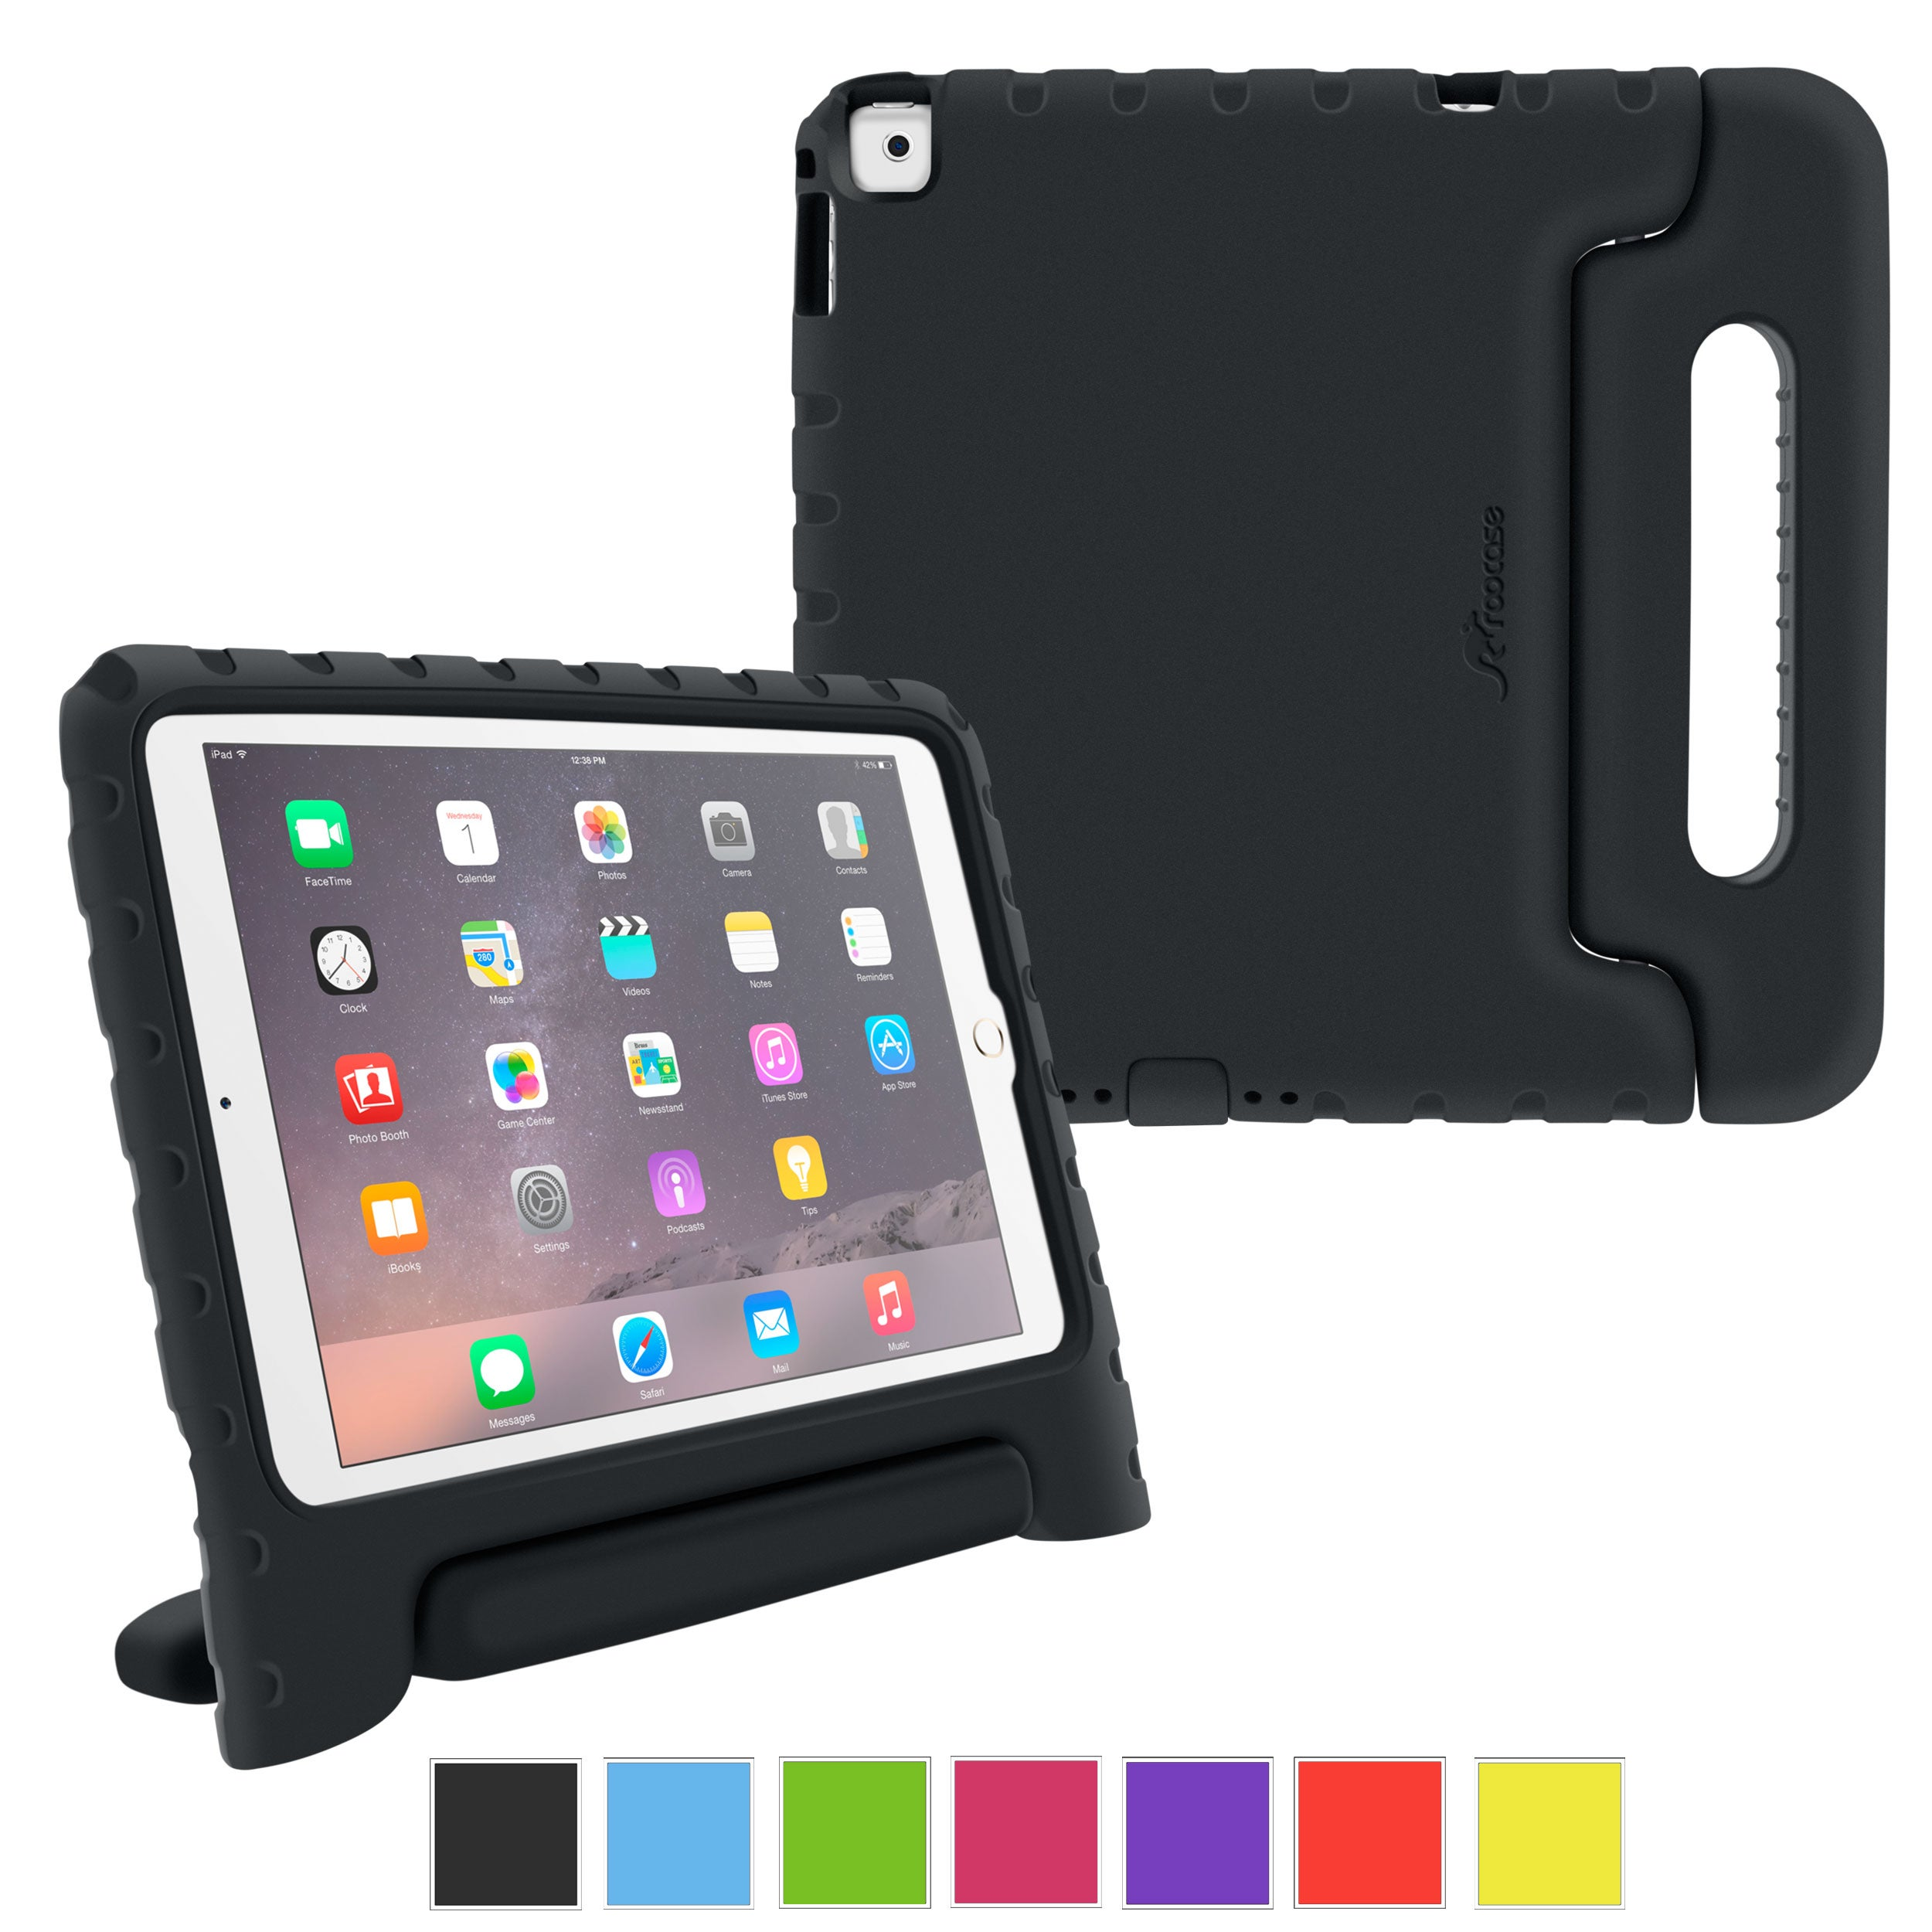 roocase KidArmor Case for Apple iPad Air 2